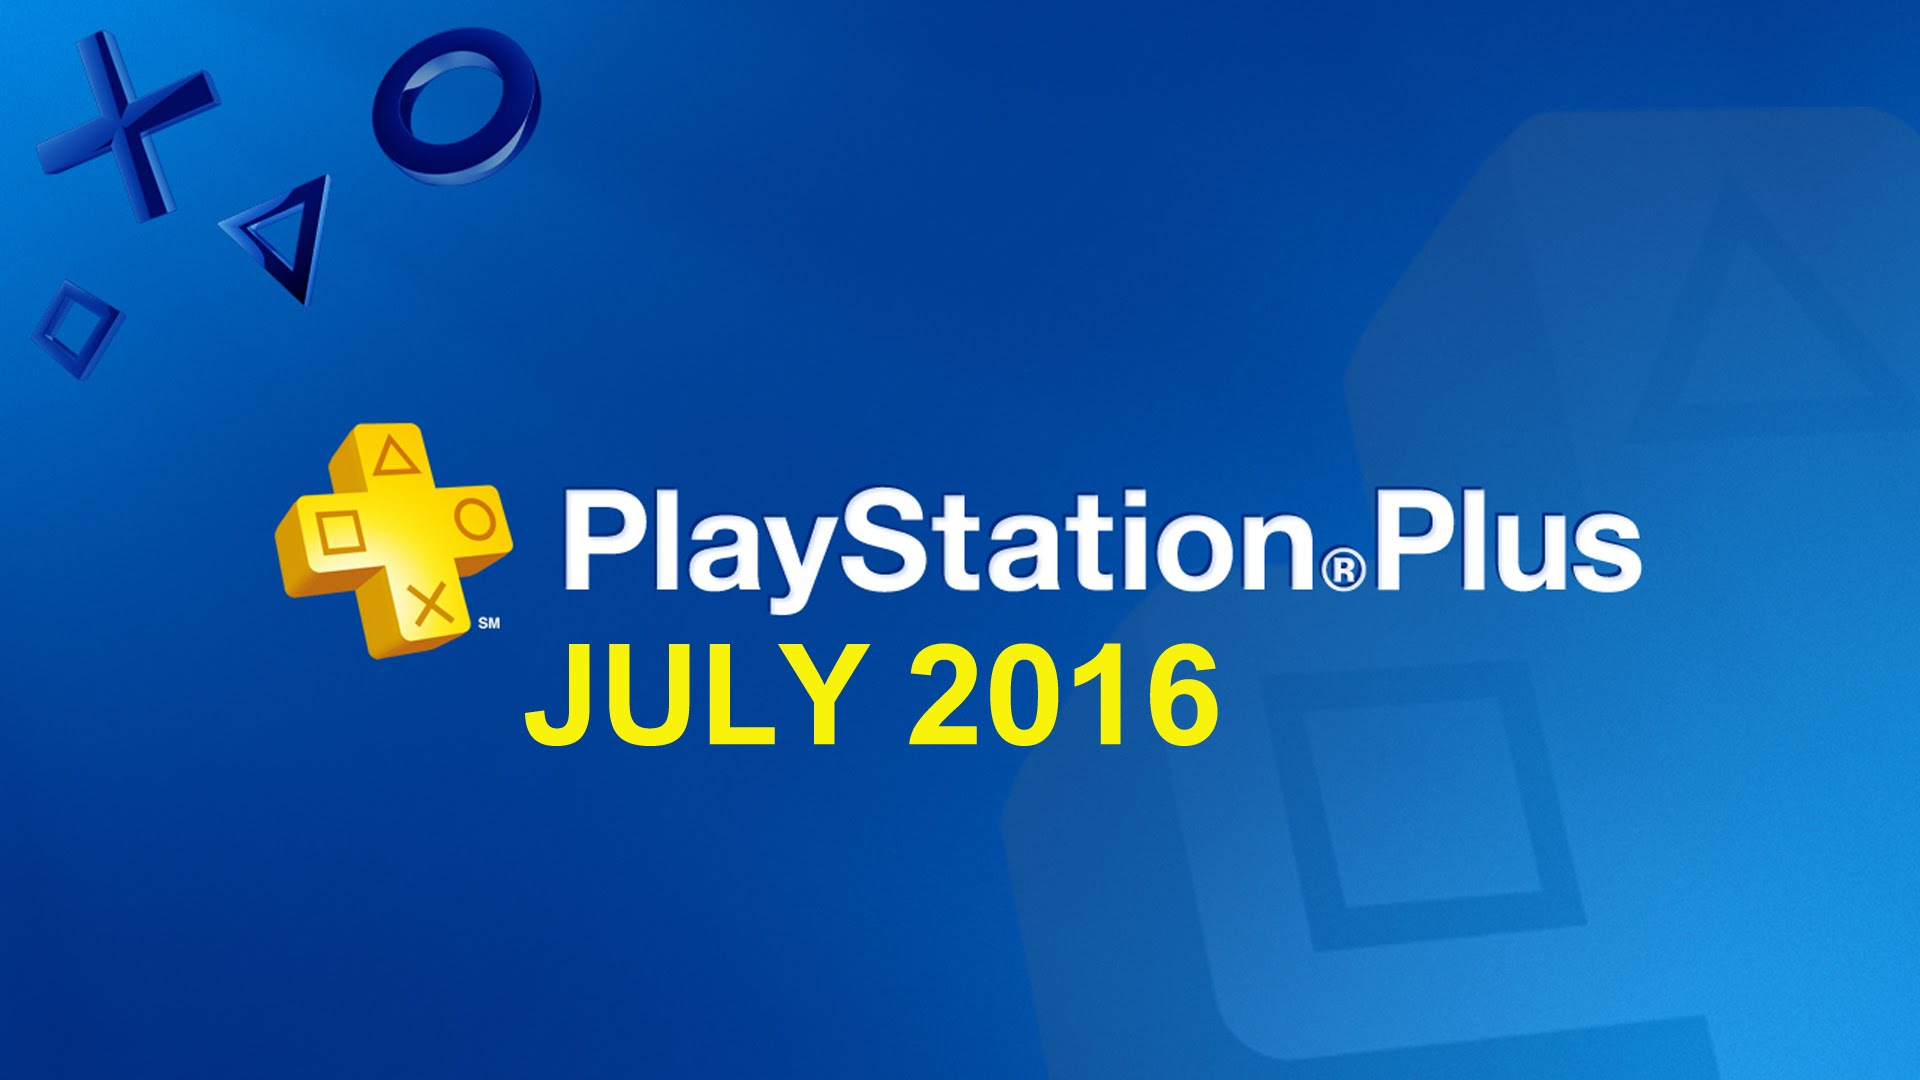 Disponibles los juegos gratuitos de julio para PlayStation Plus